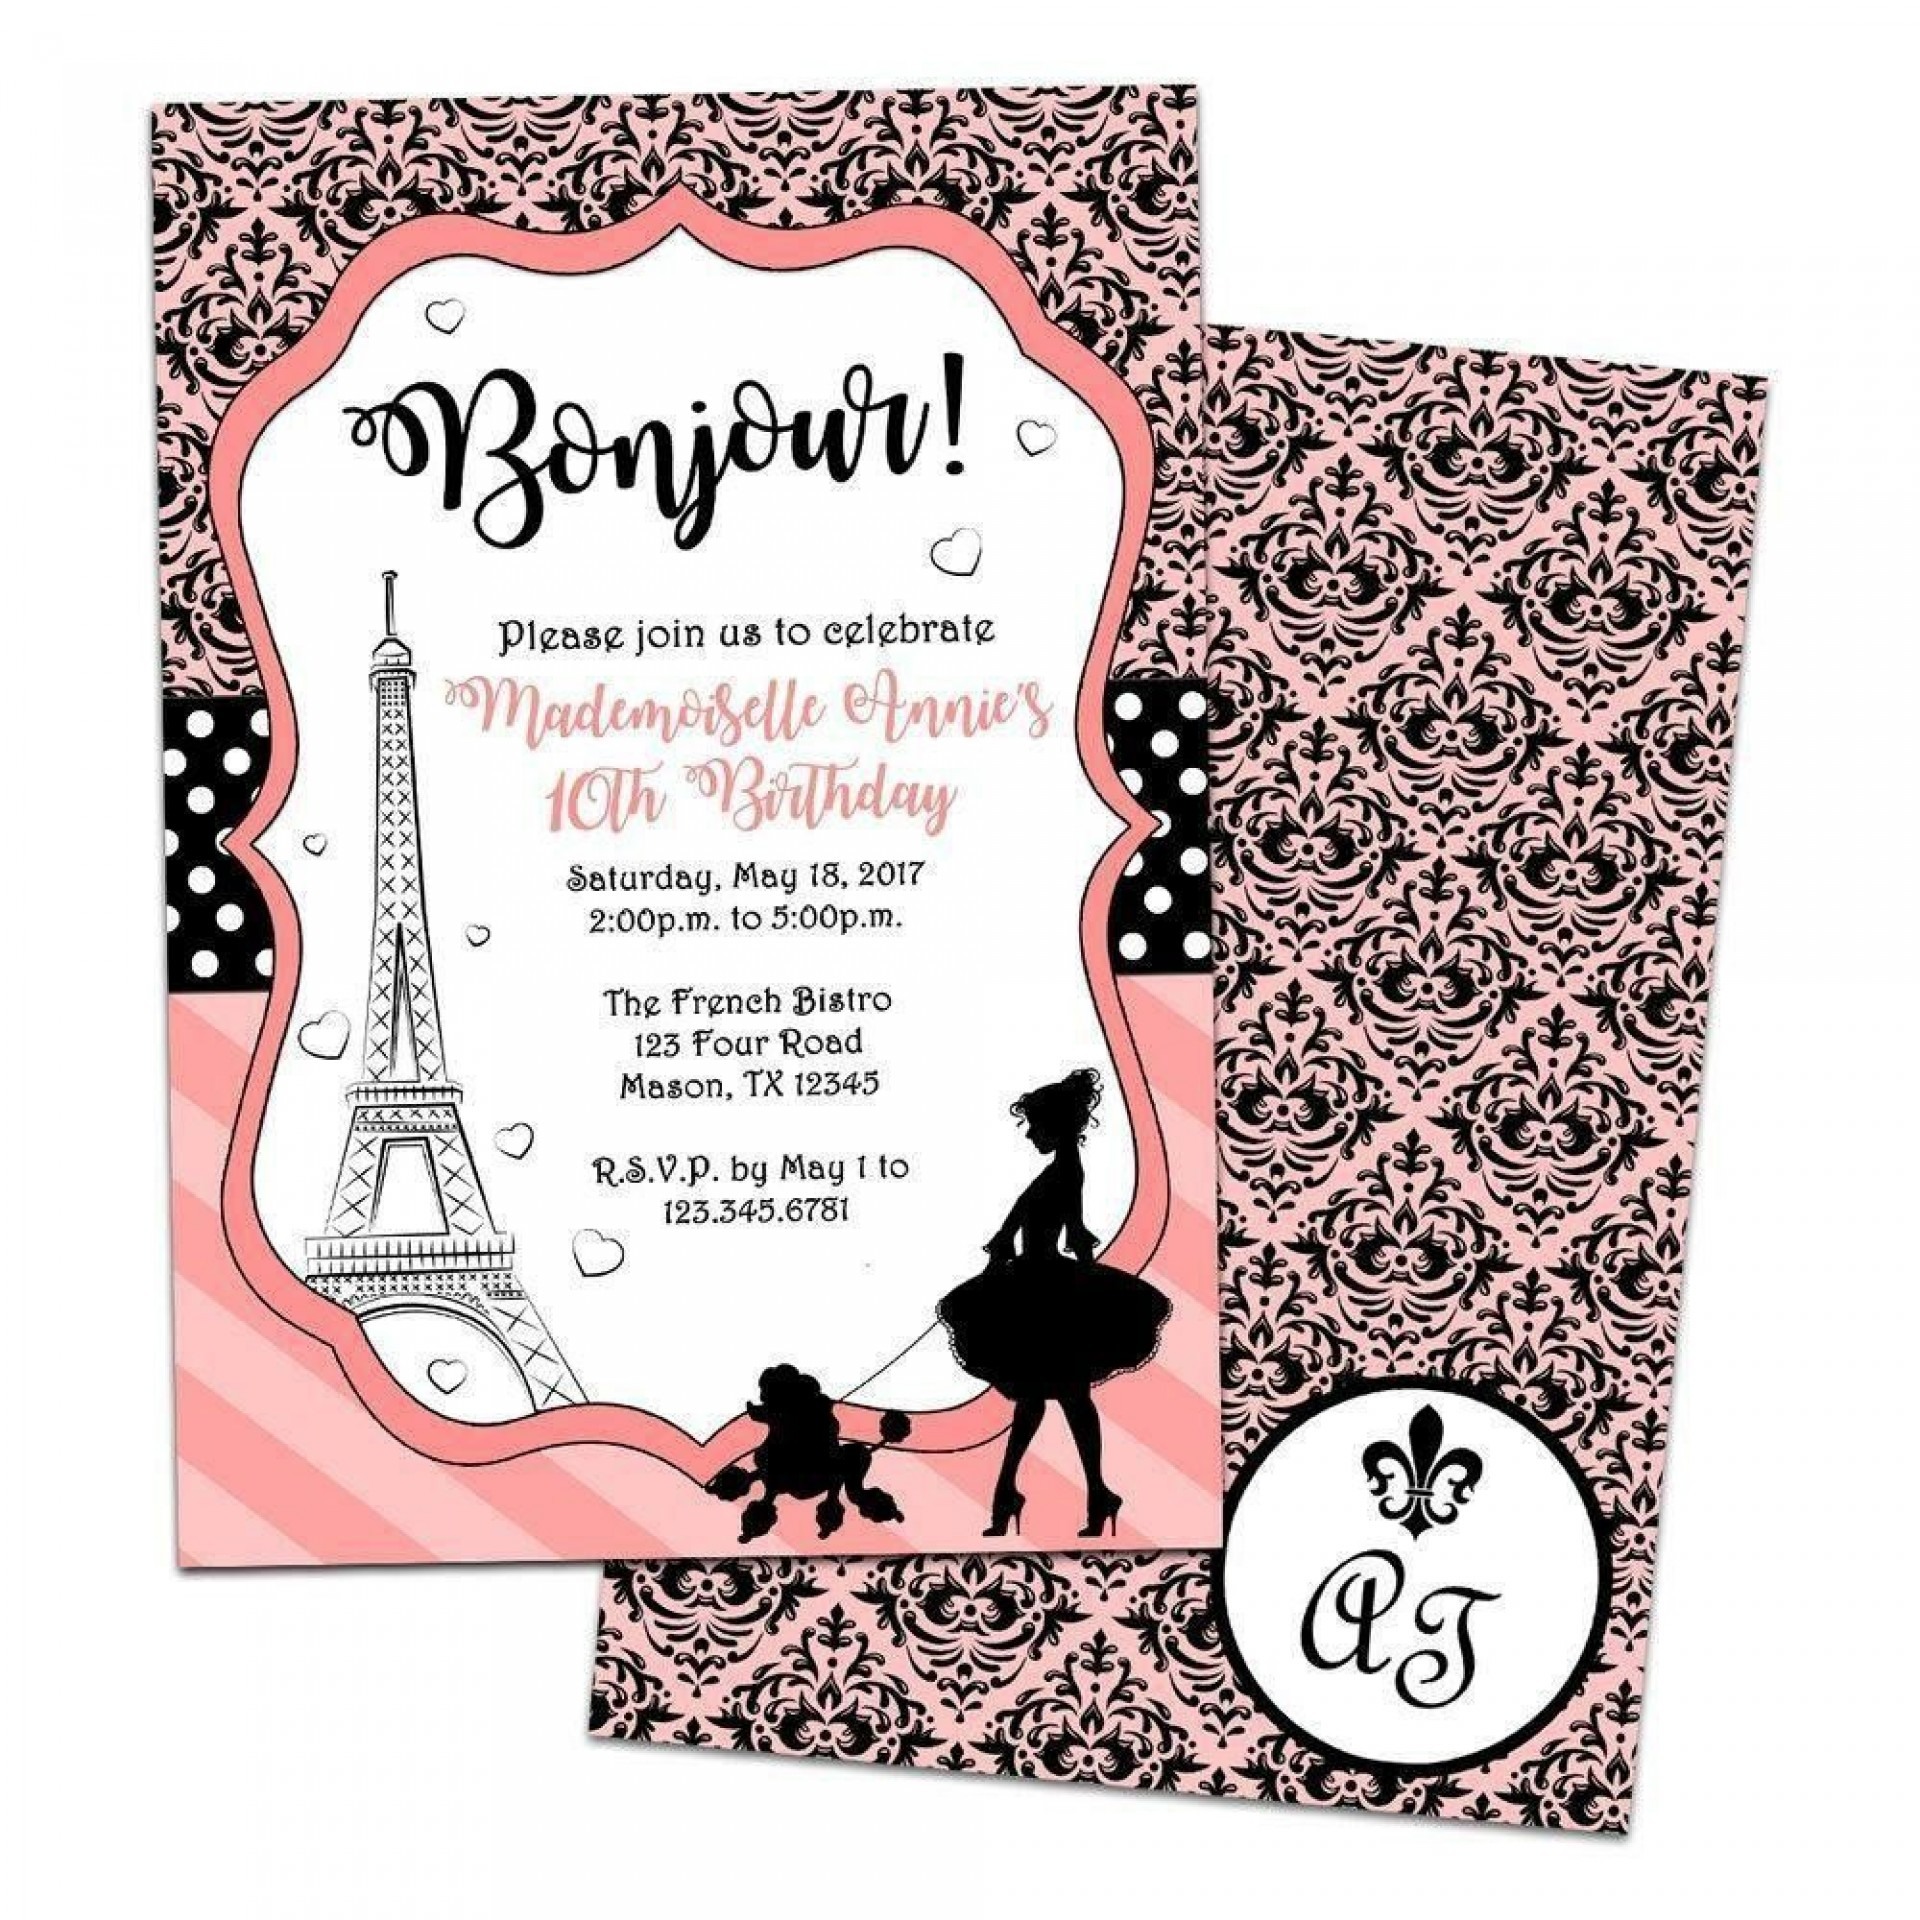 005 Exceptional Free Pari Birthday Party Invitation Template Highest Quality  Templates1920